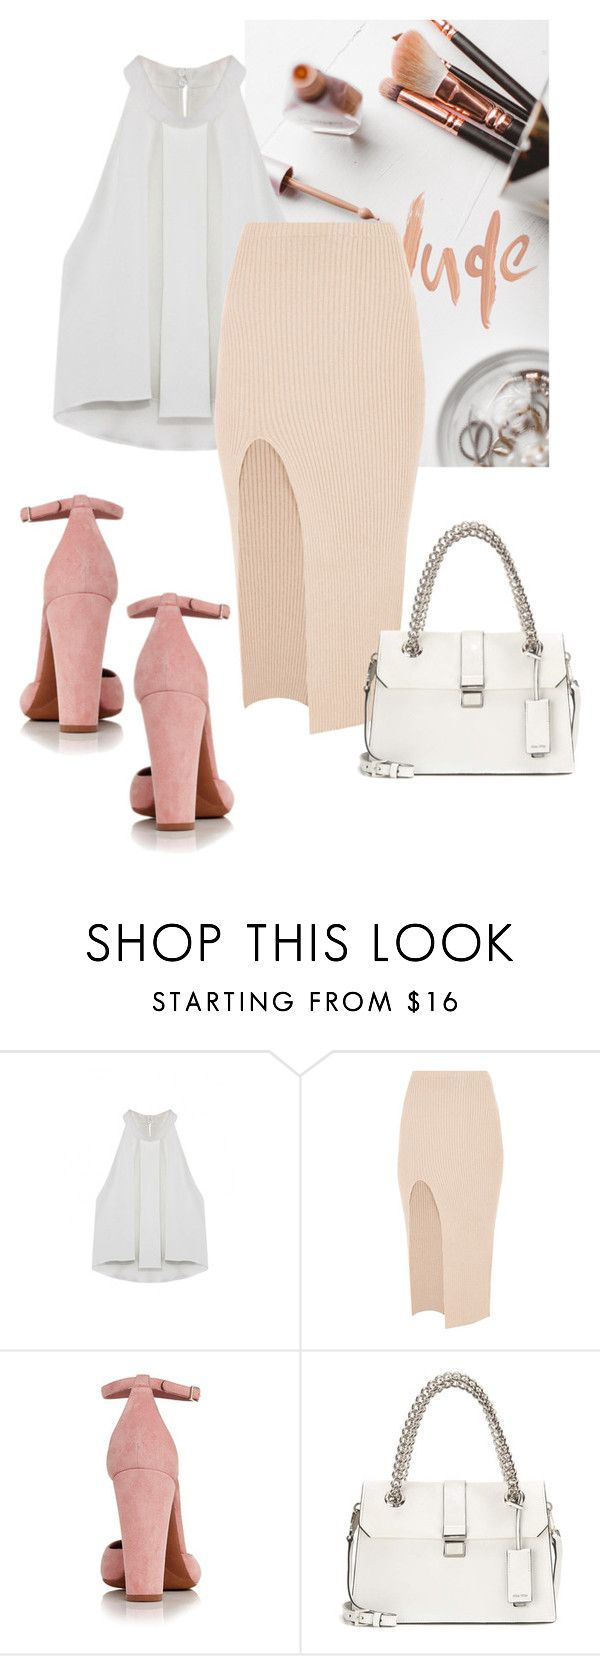 """lovelyhard"" by namelif ❤ liked on Polyvore featuring Maurie & Eve, Tabitha Simmons and Miu Miu"